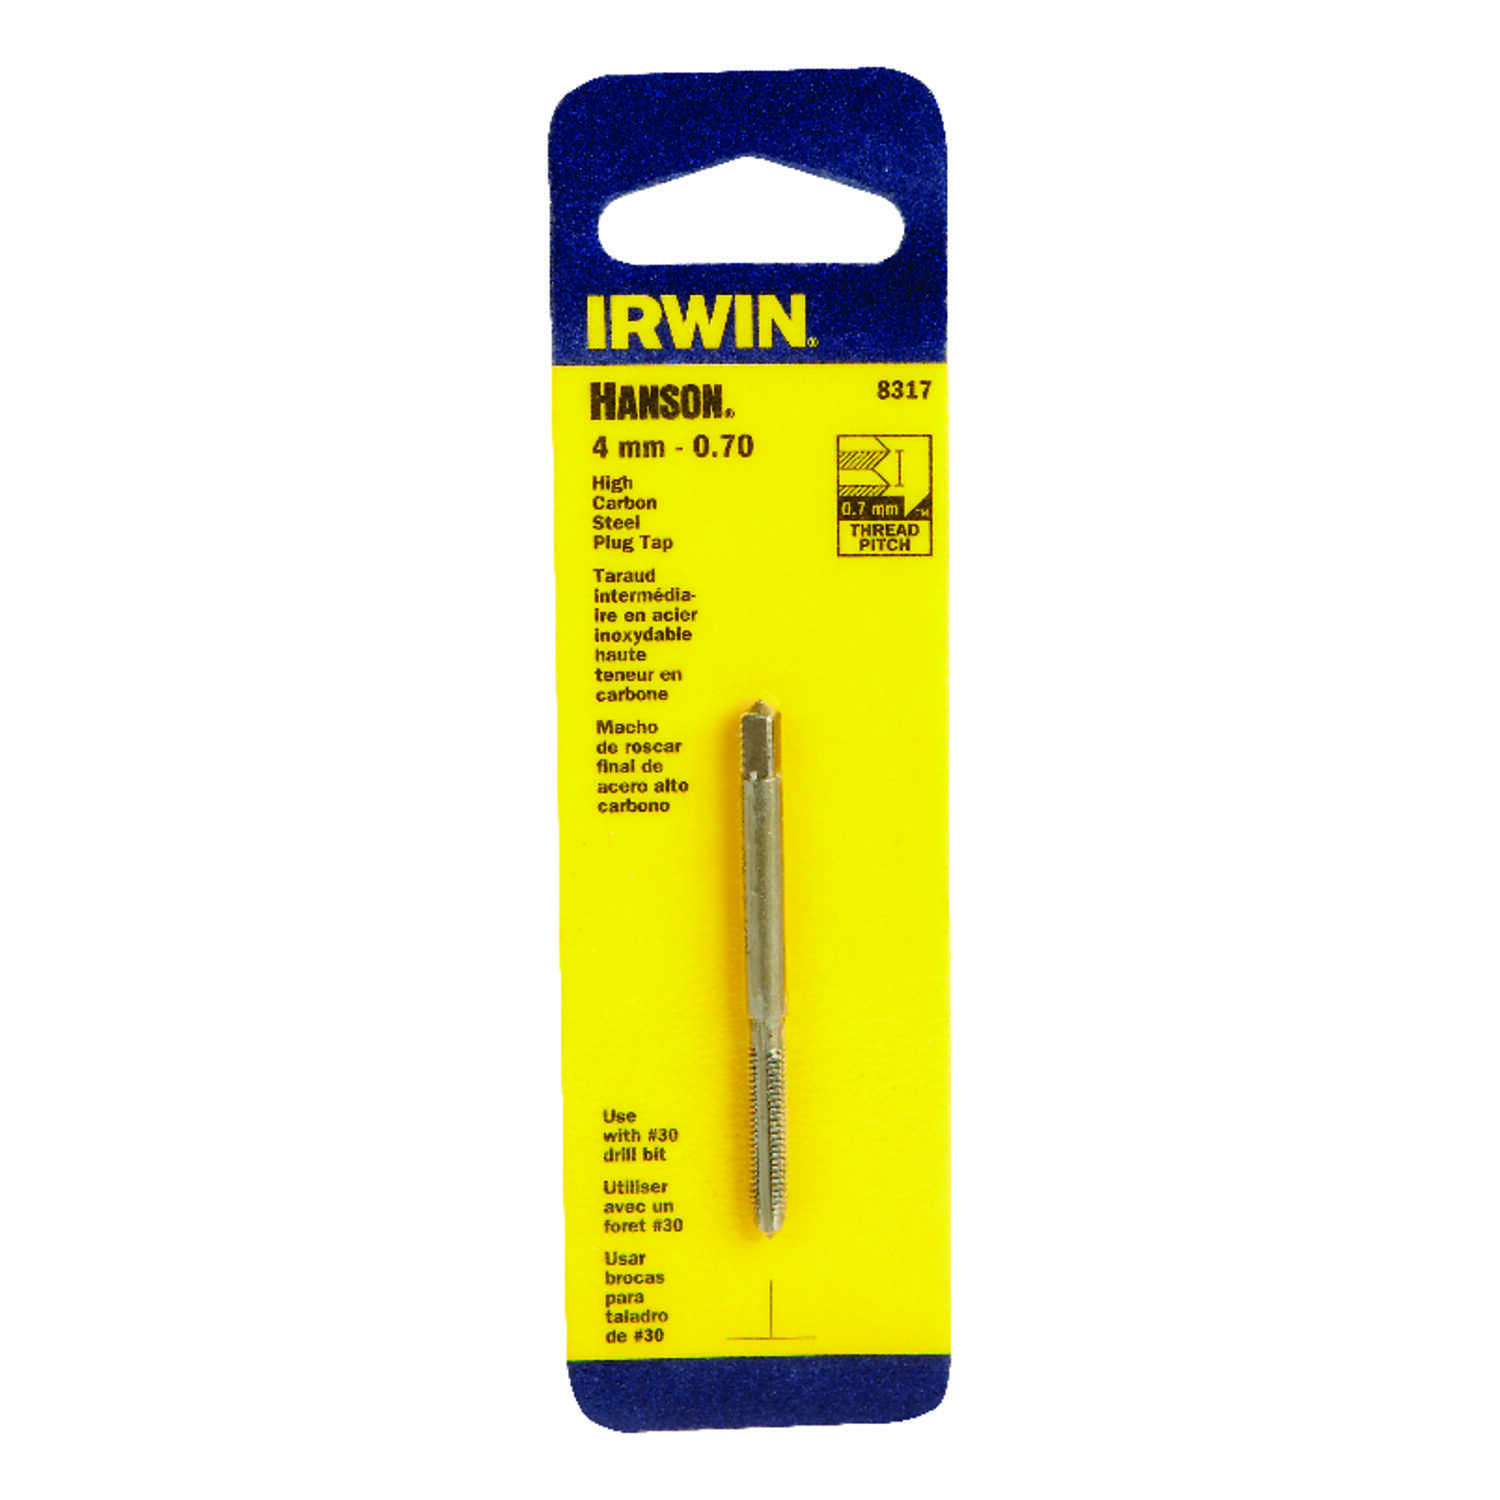 Irwin  Hanson  High Carbon Steel  Metric  Plug Tap  1 pc.